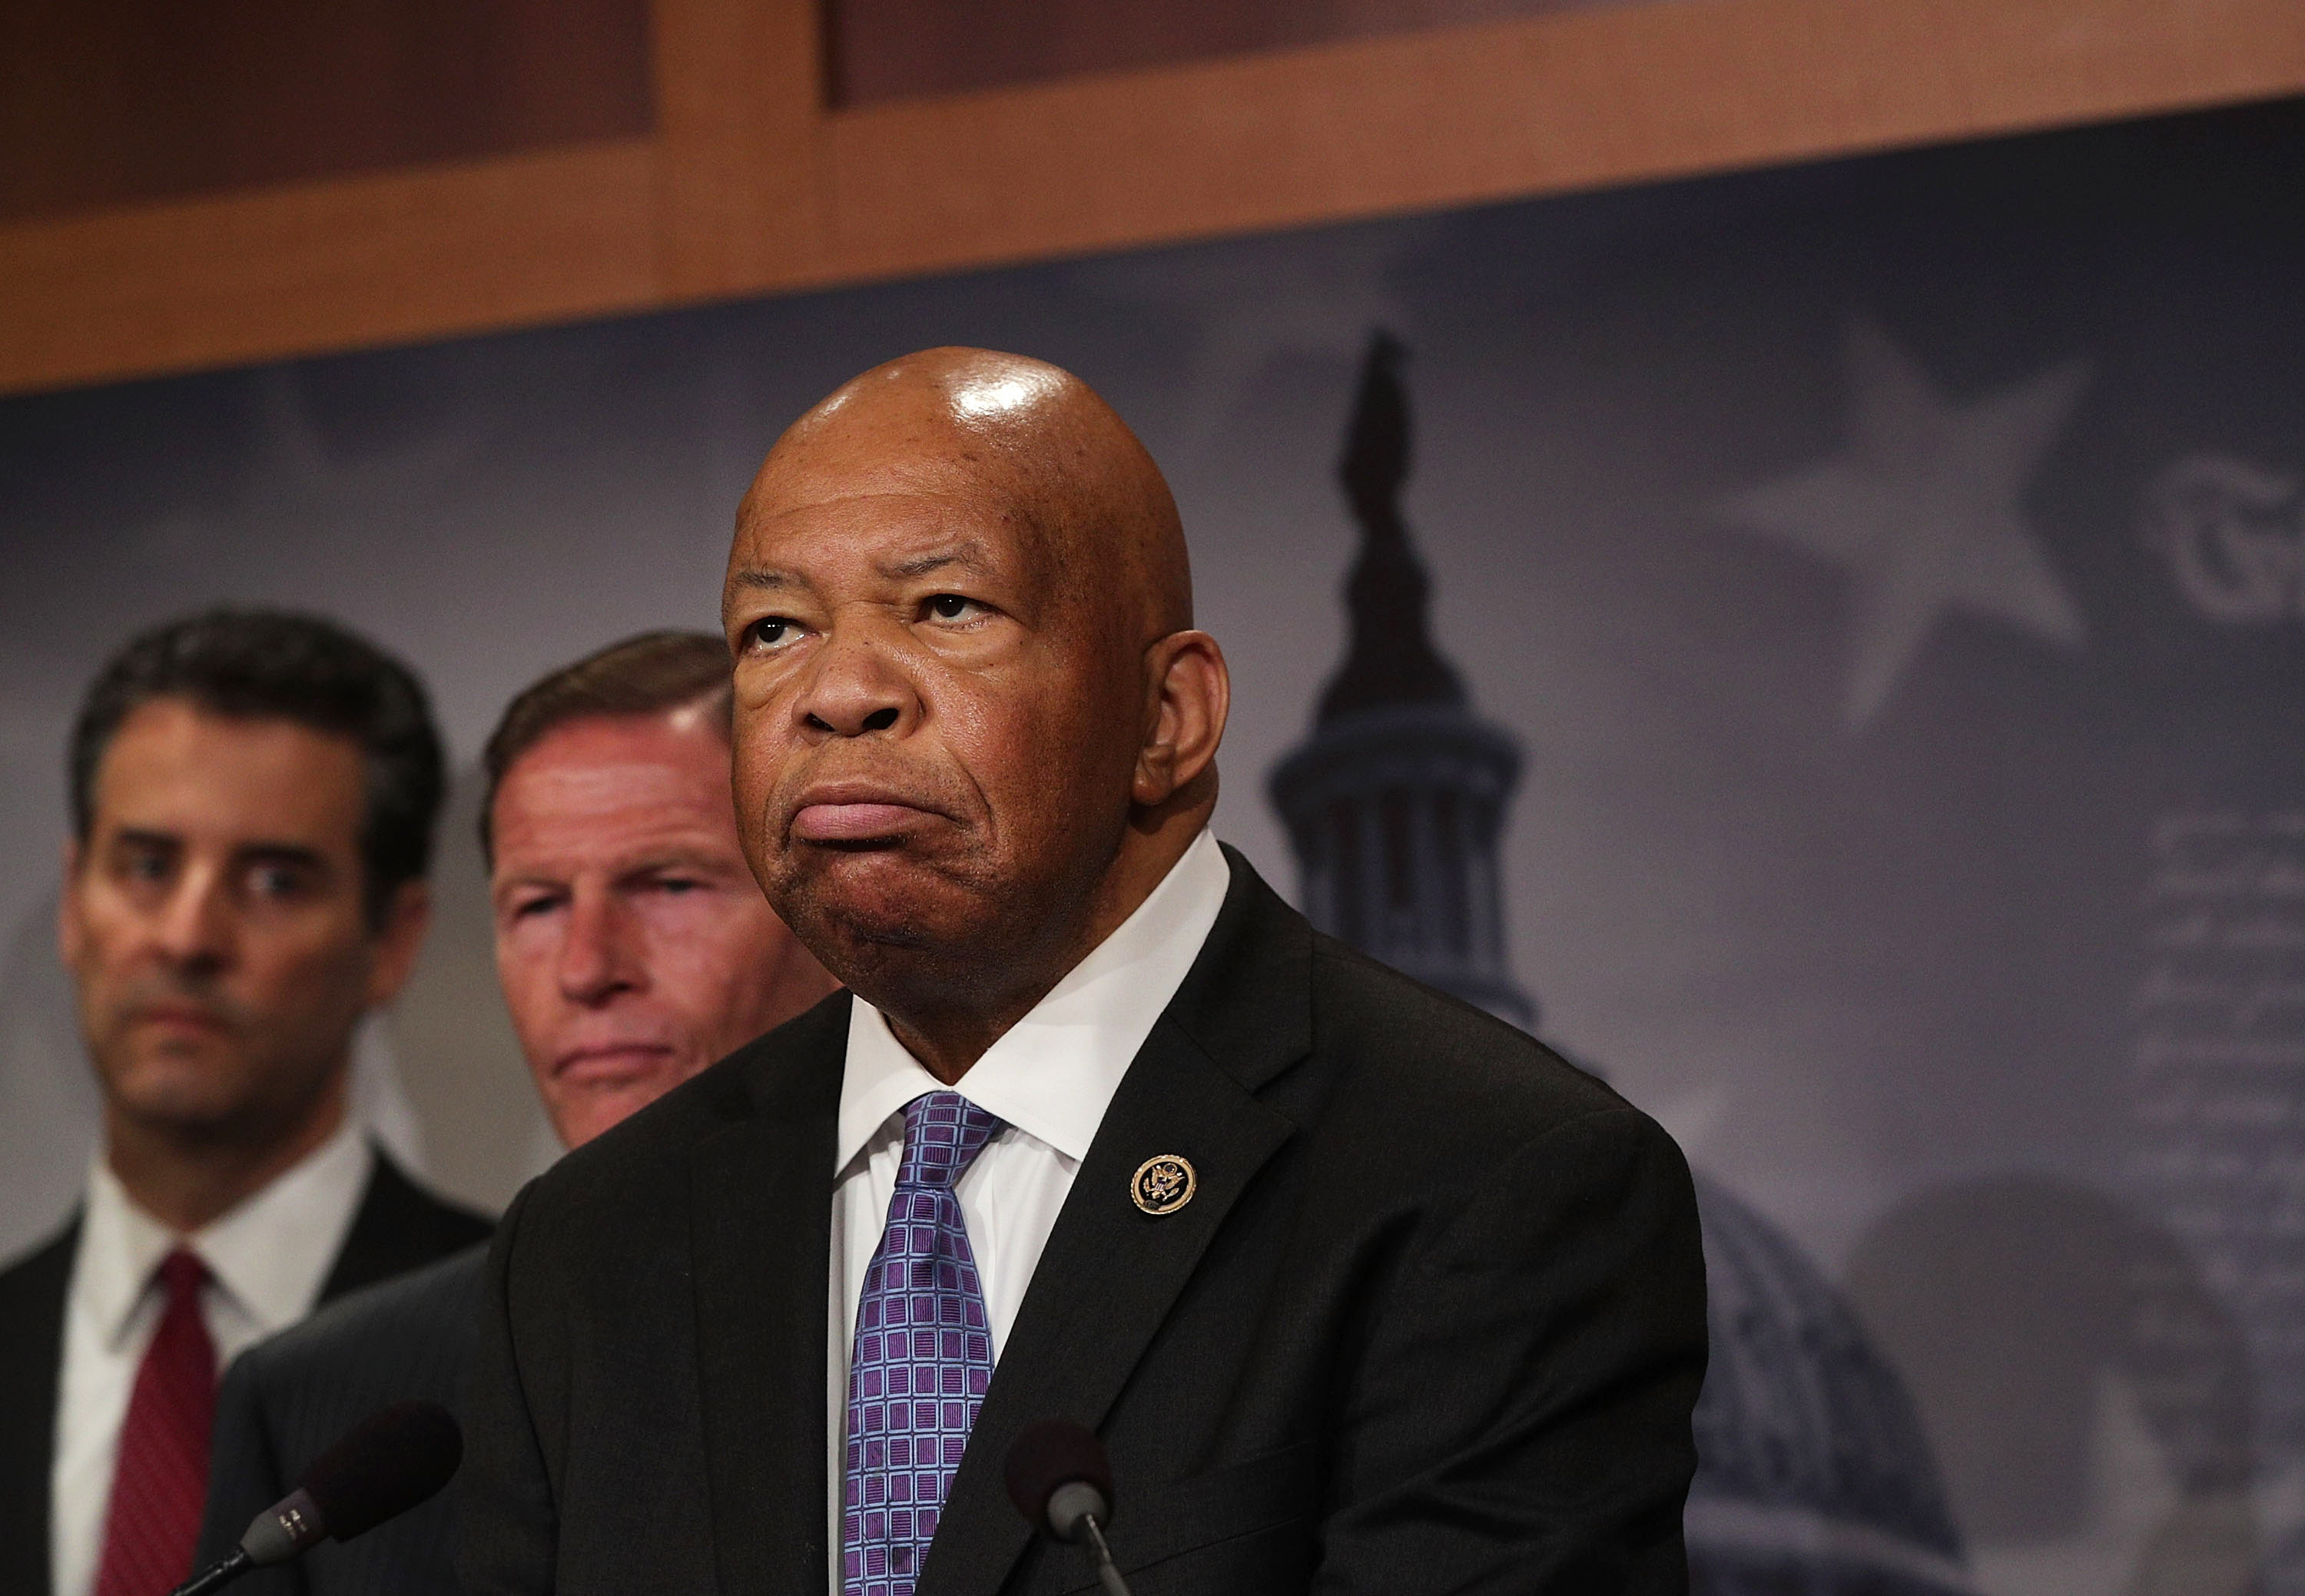 U.S. Rep. Elijah Cummings (D-MD) (R) pauses as Rep. John Sarbanes (D-MD) (L) and Sen. Richard Blumenthal (D-CT) (2nd L) look on during a news conference at the Capitol. (Alex Wong/Getty Images)